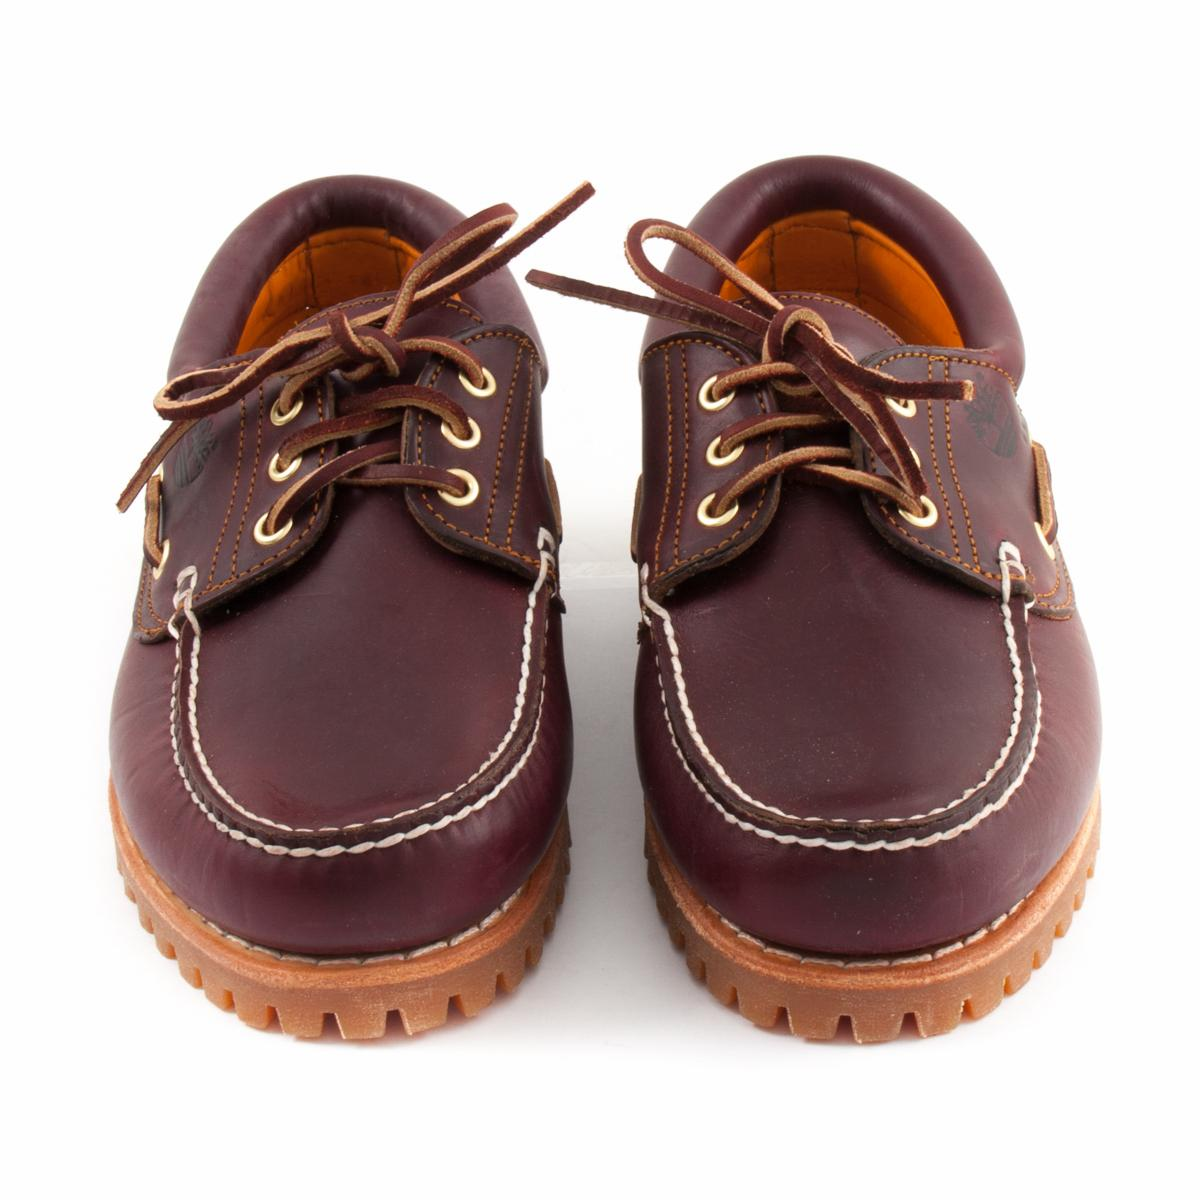 Boat Shoes TIMBERLAND 50009 3 Eye Classic Lug Burgundy